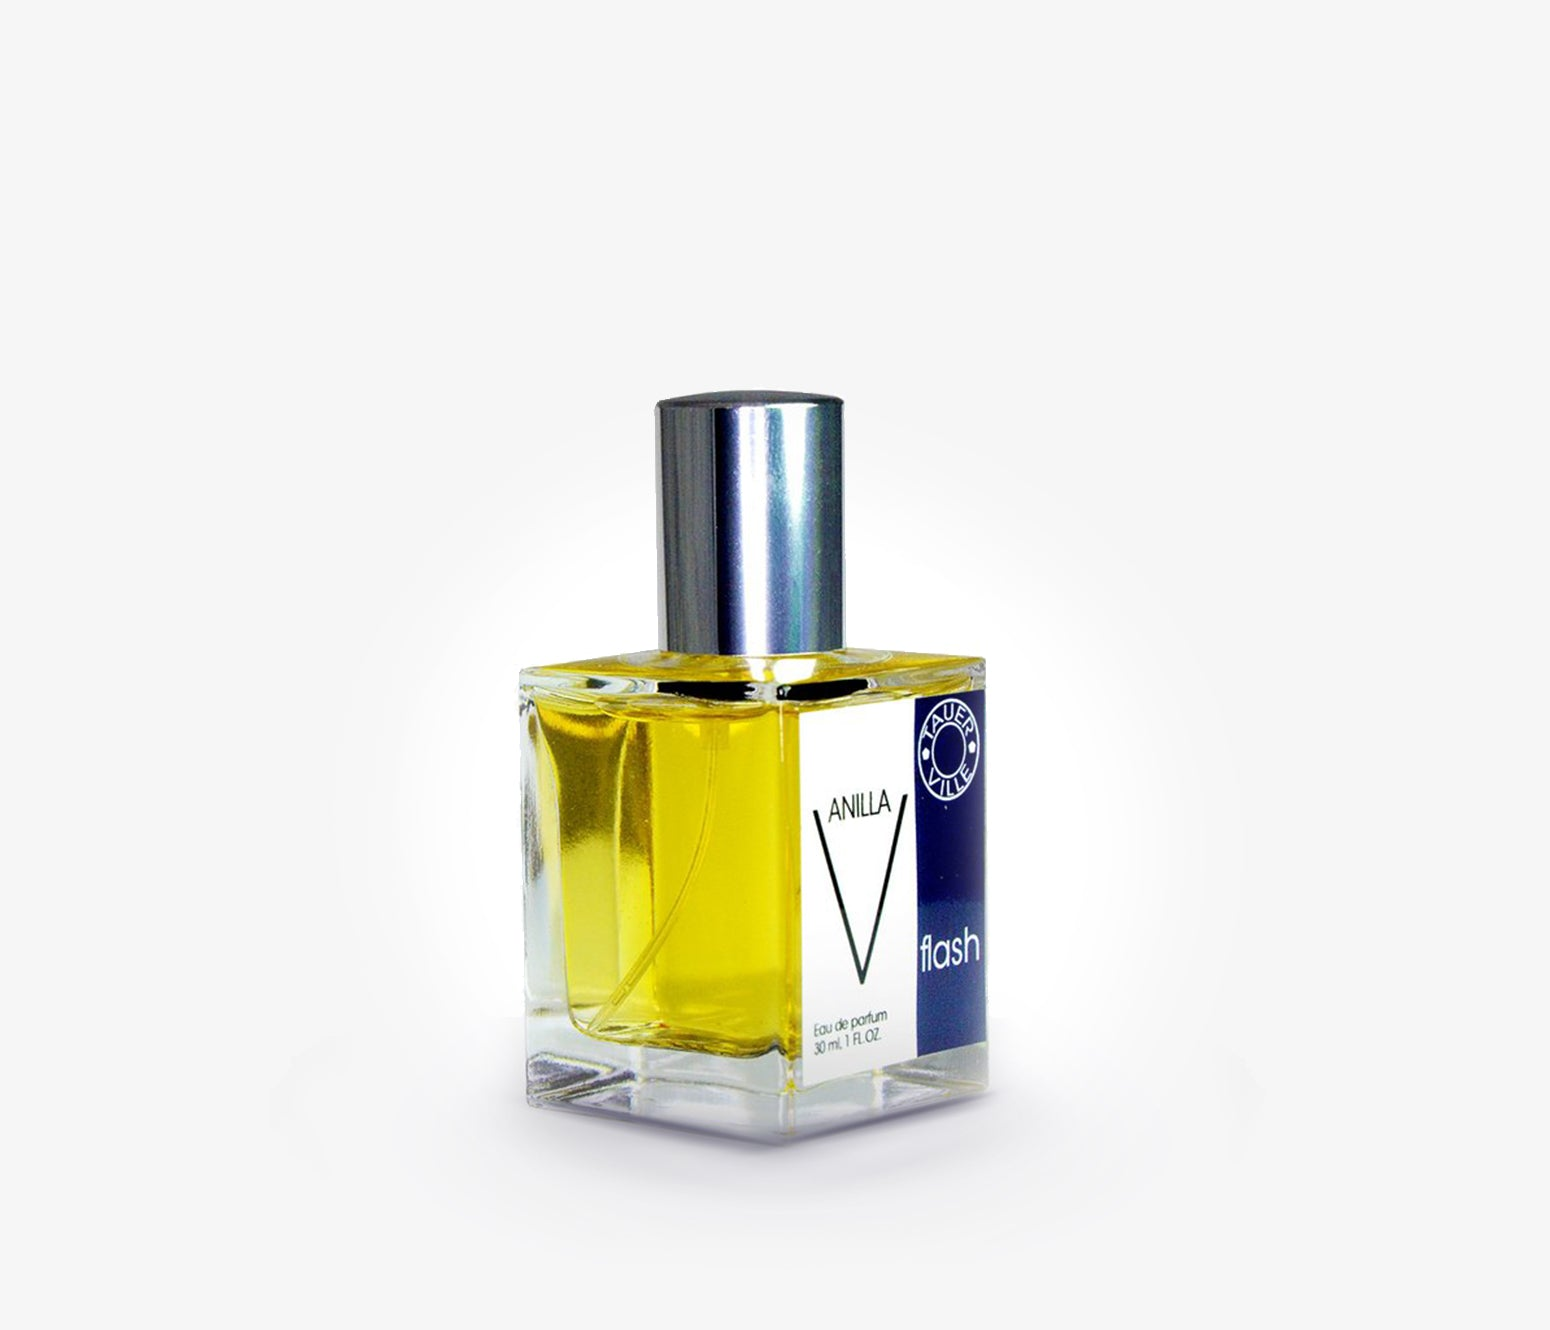 Tauerville - Vanilla Flash - 30ml - XTI001 - product image - Fragrance - Les Senteurs